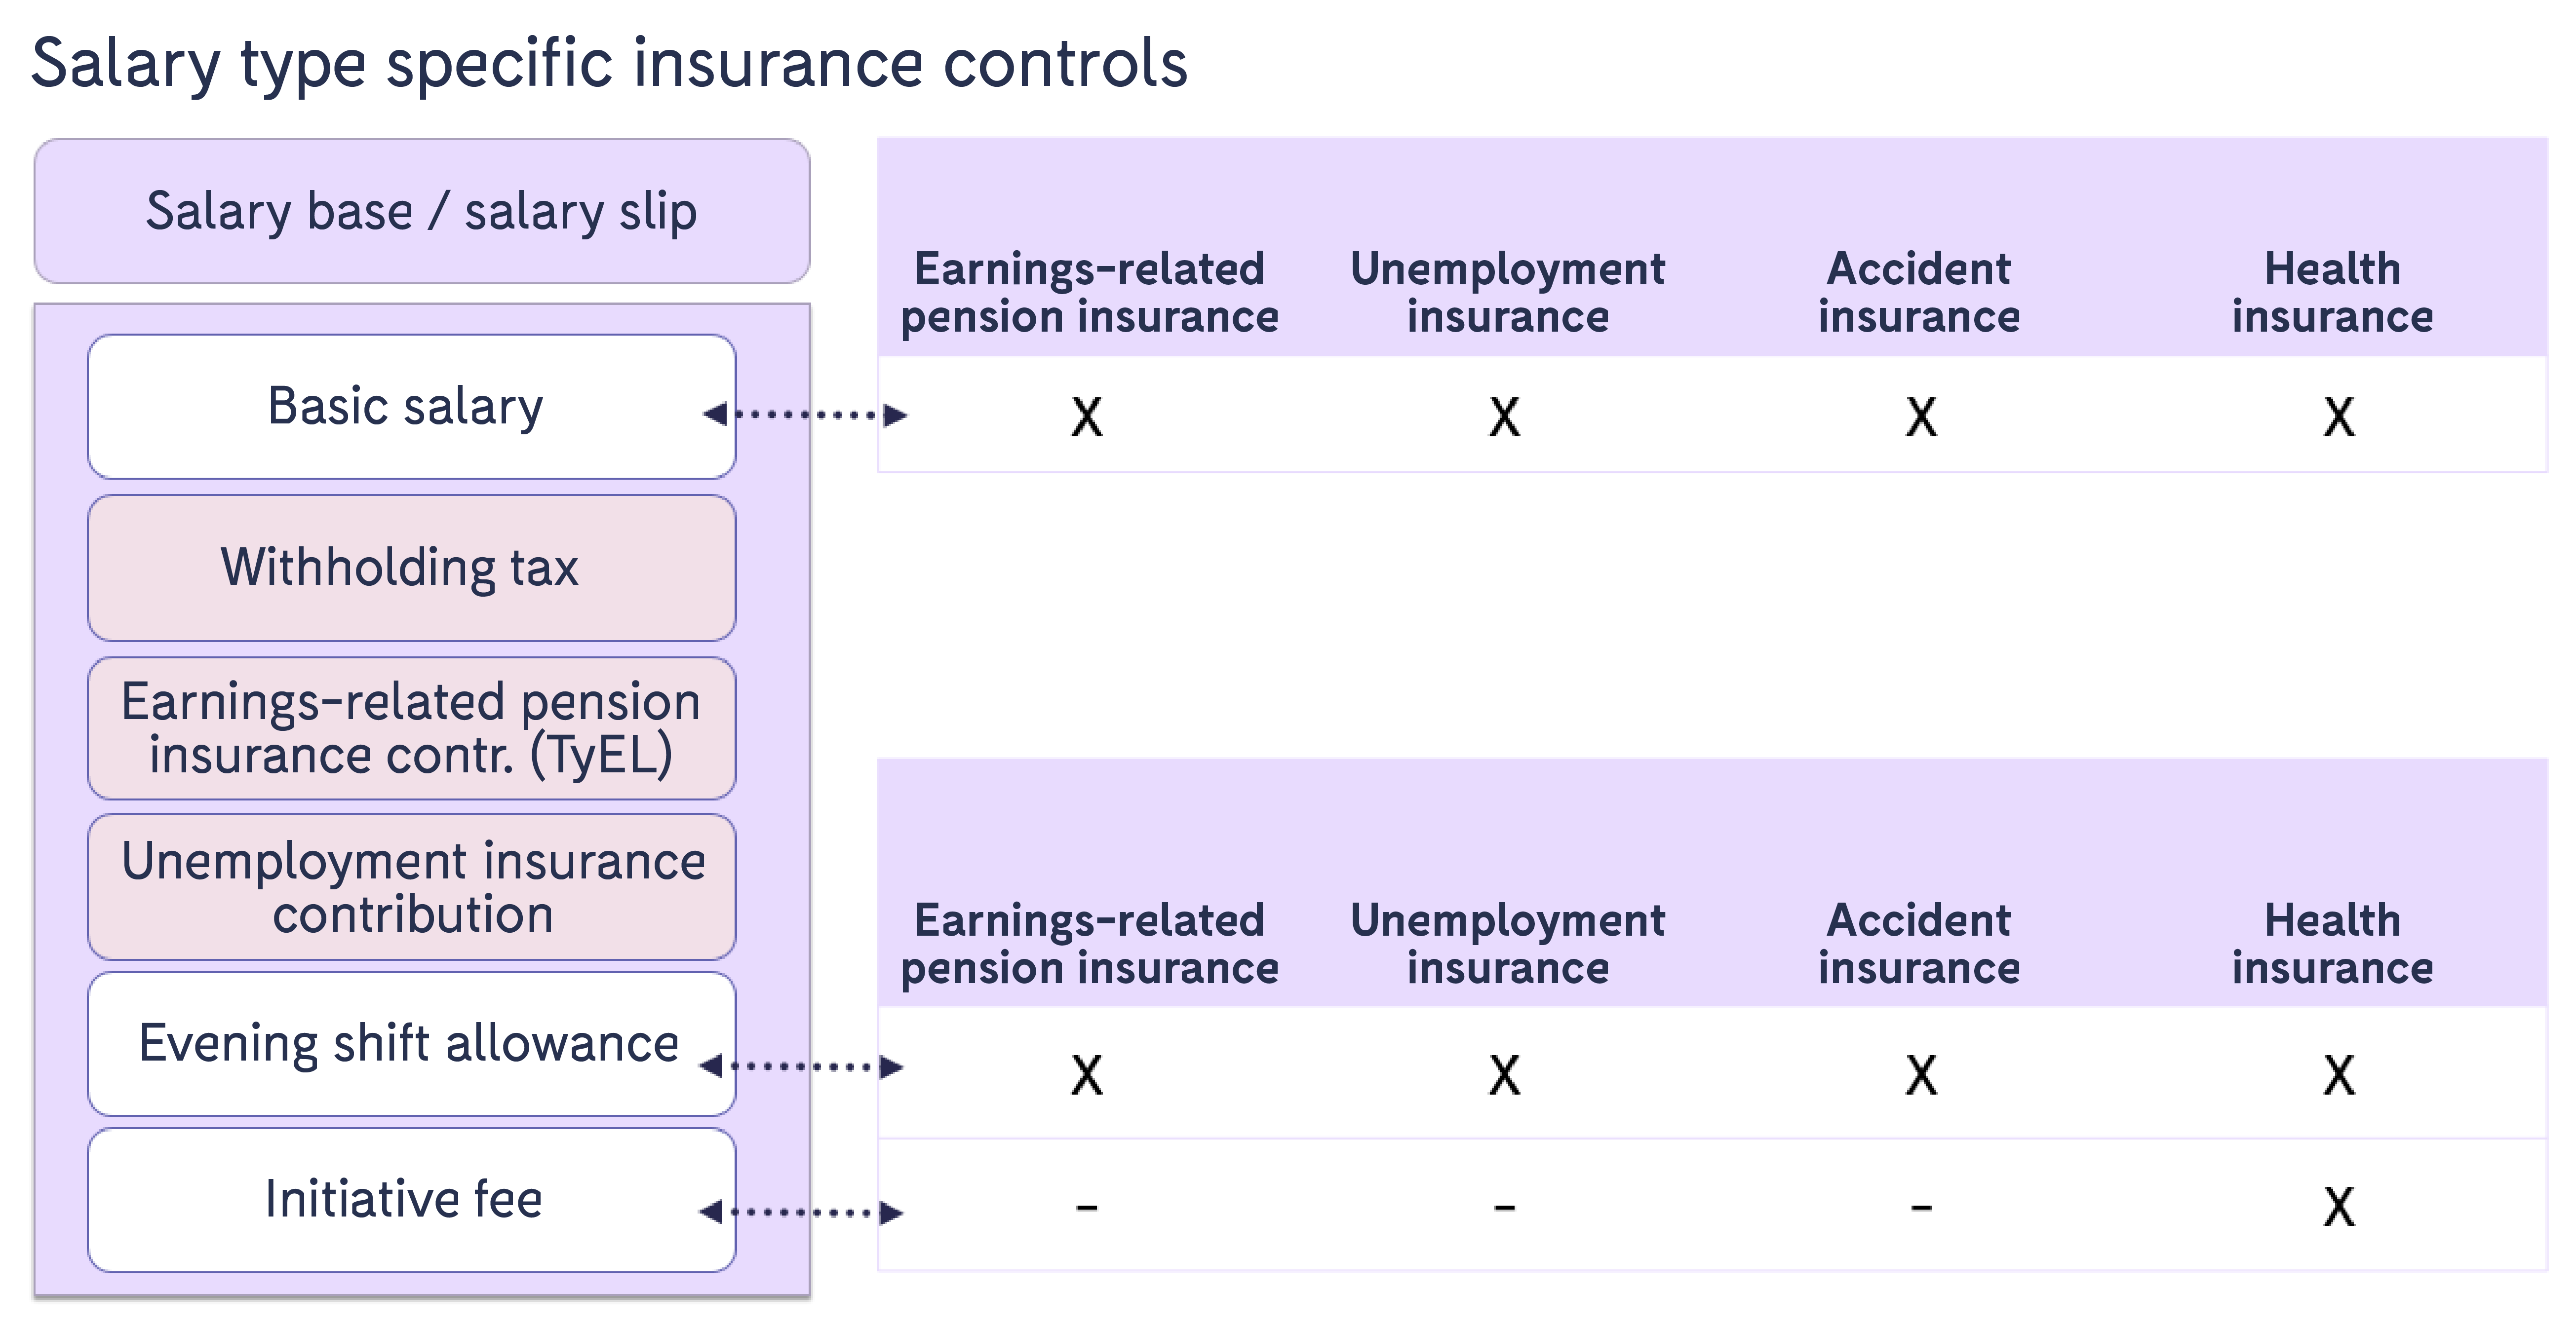 The_controls_of_insurance_with_salary_types_2.png